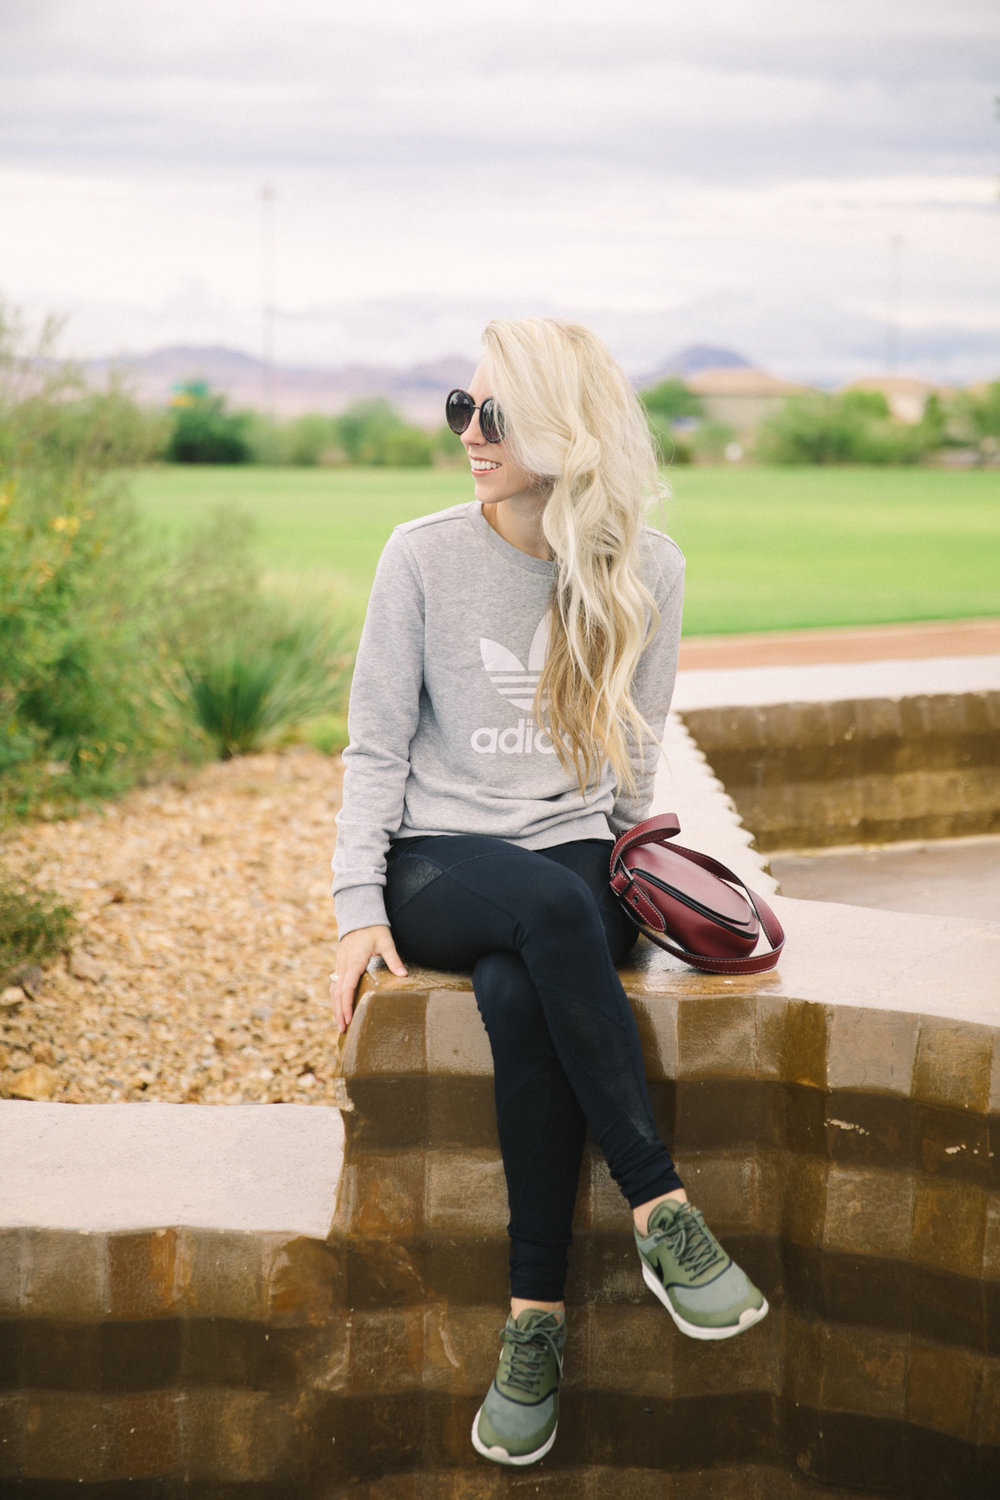 The Perfect Athletic Wear by Las Vegas fashion blogger Life of a Sister